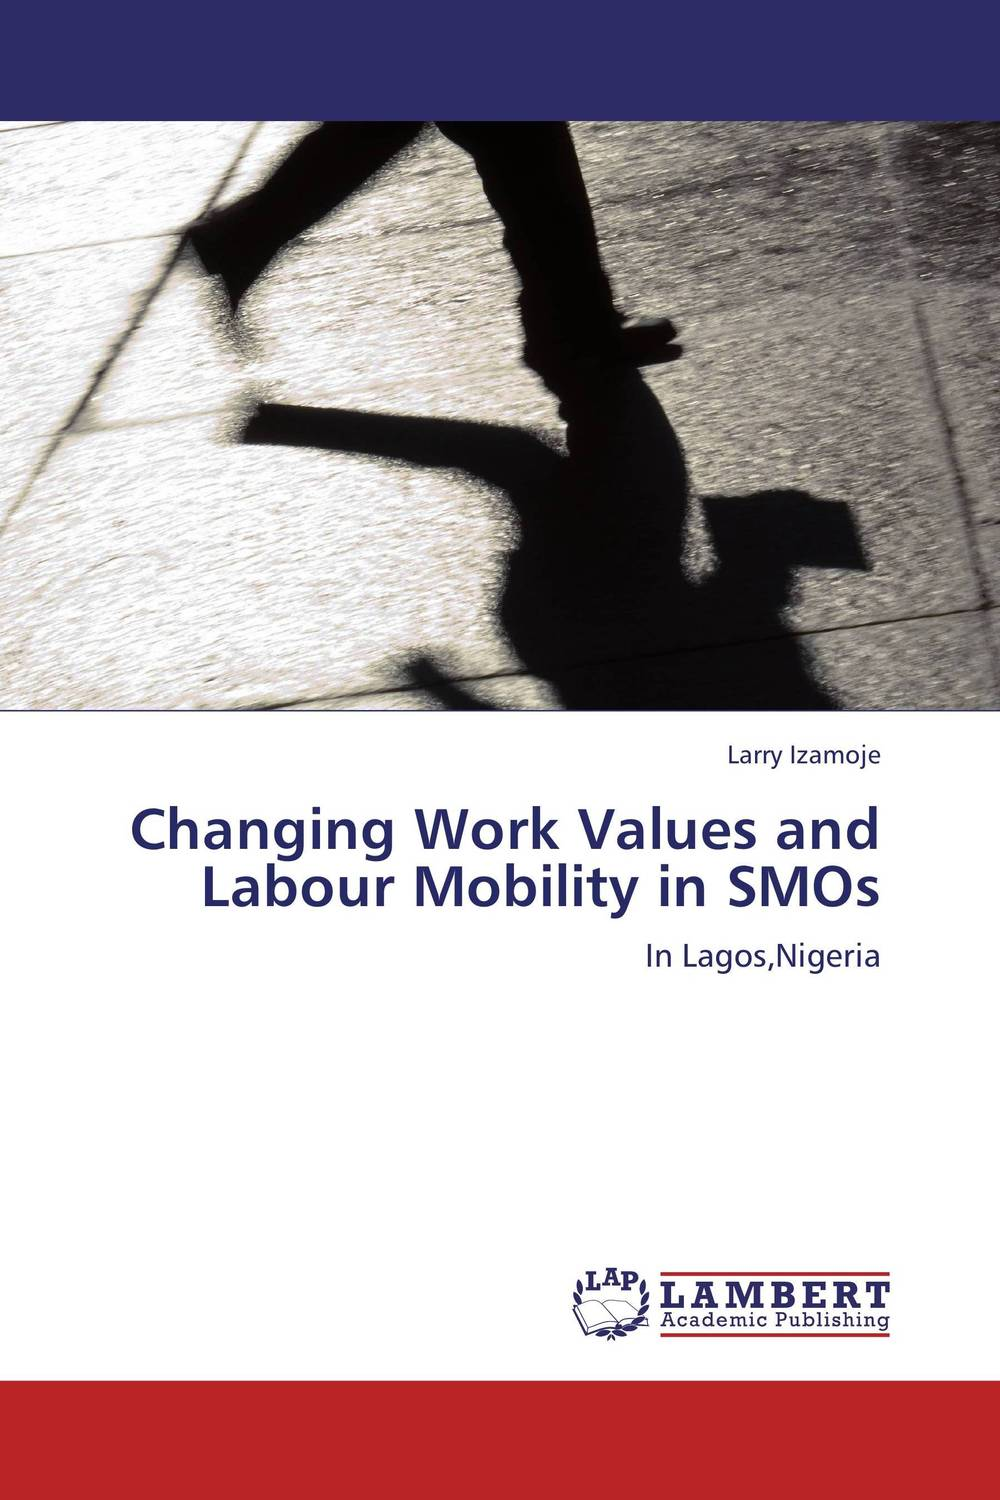 Changing Work Values and Labour Mobility in SMOs gurpreet kaur deepak grover and sumeet singh dental mobility and splinting